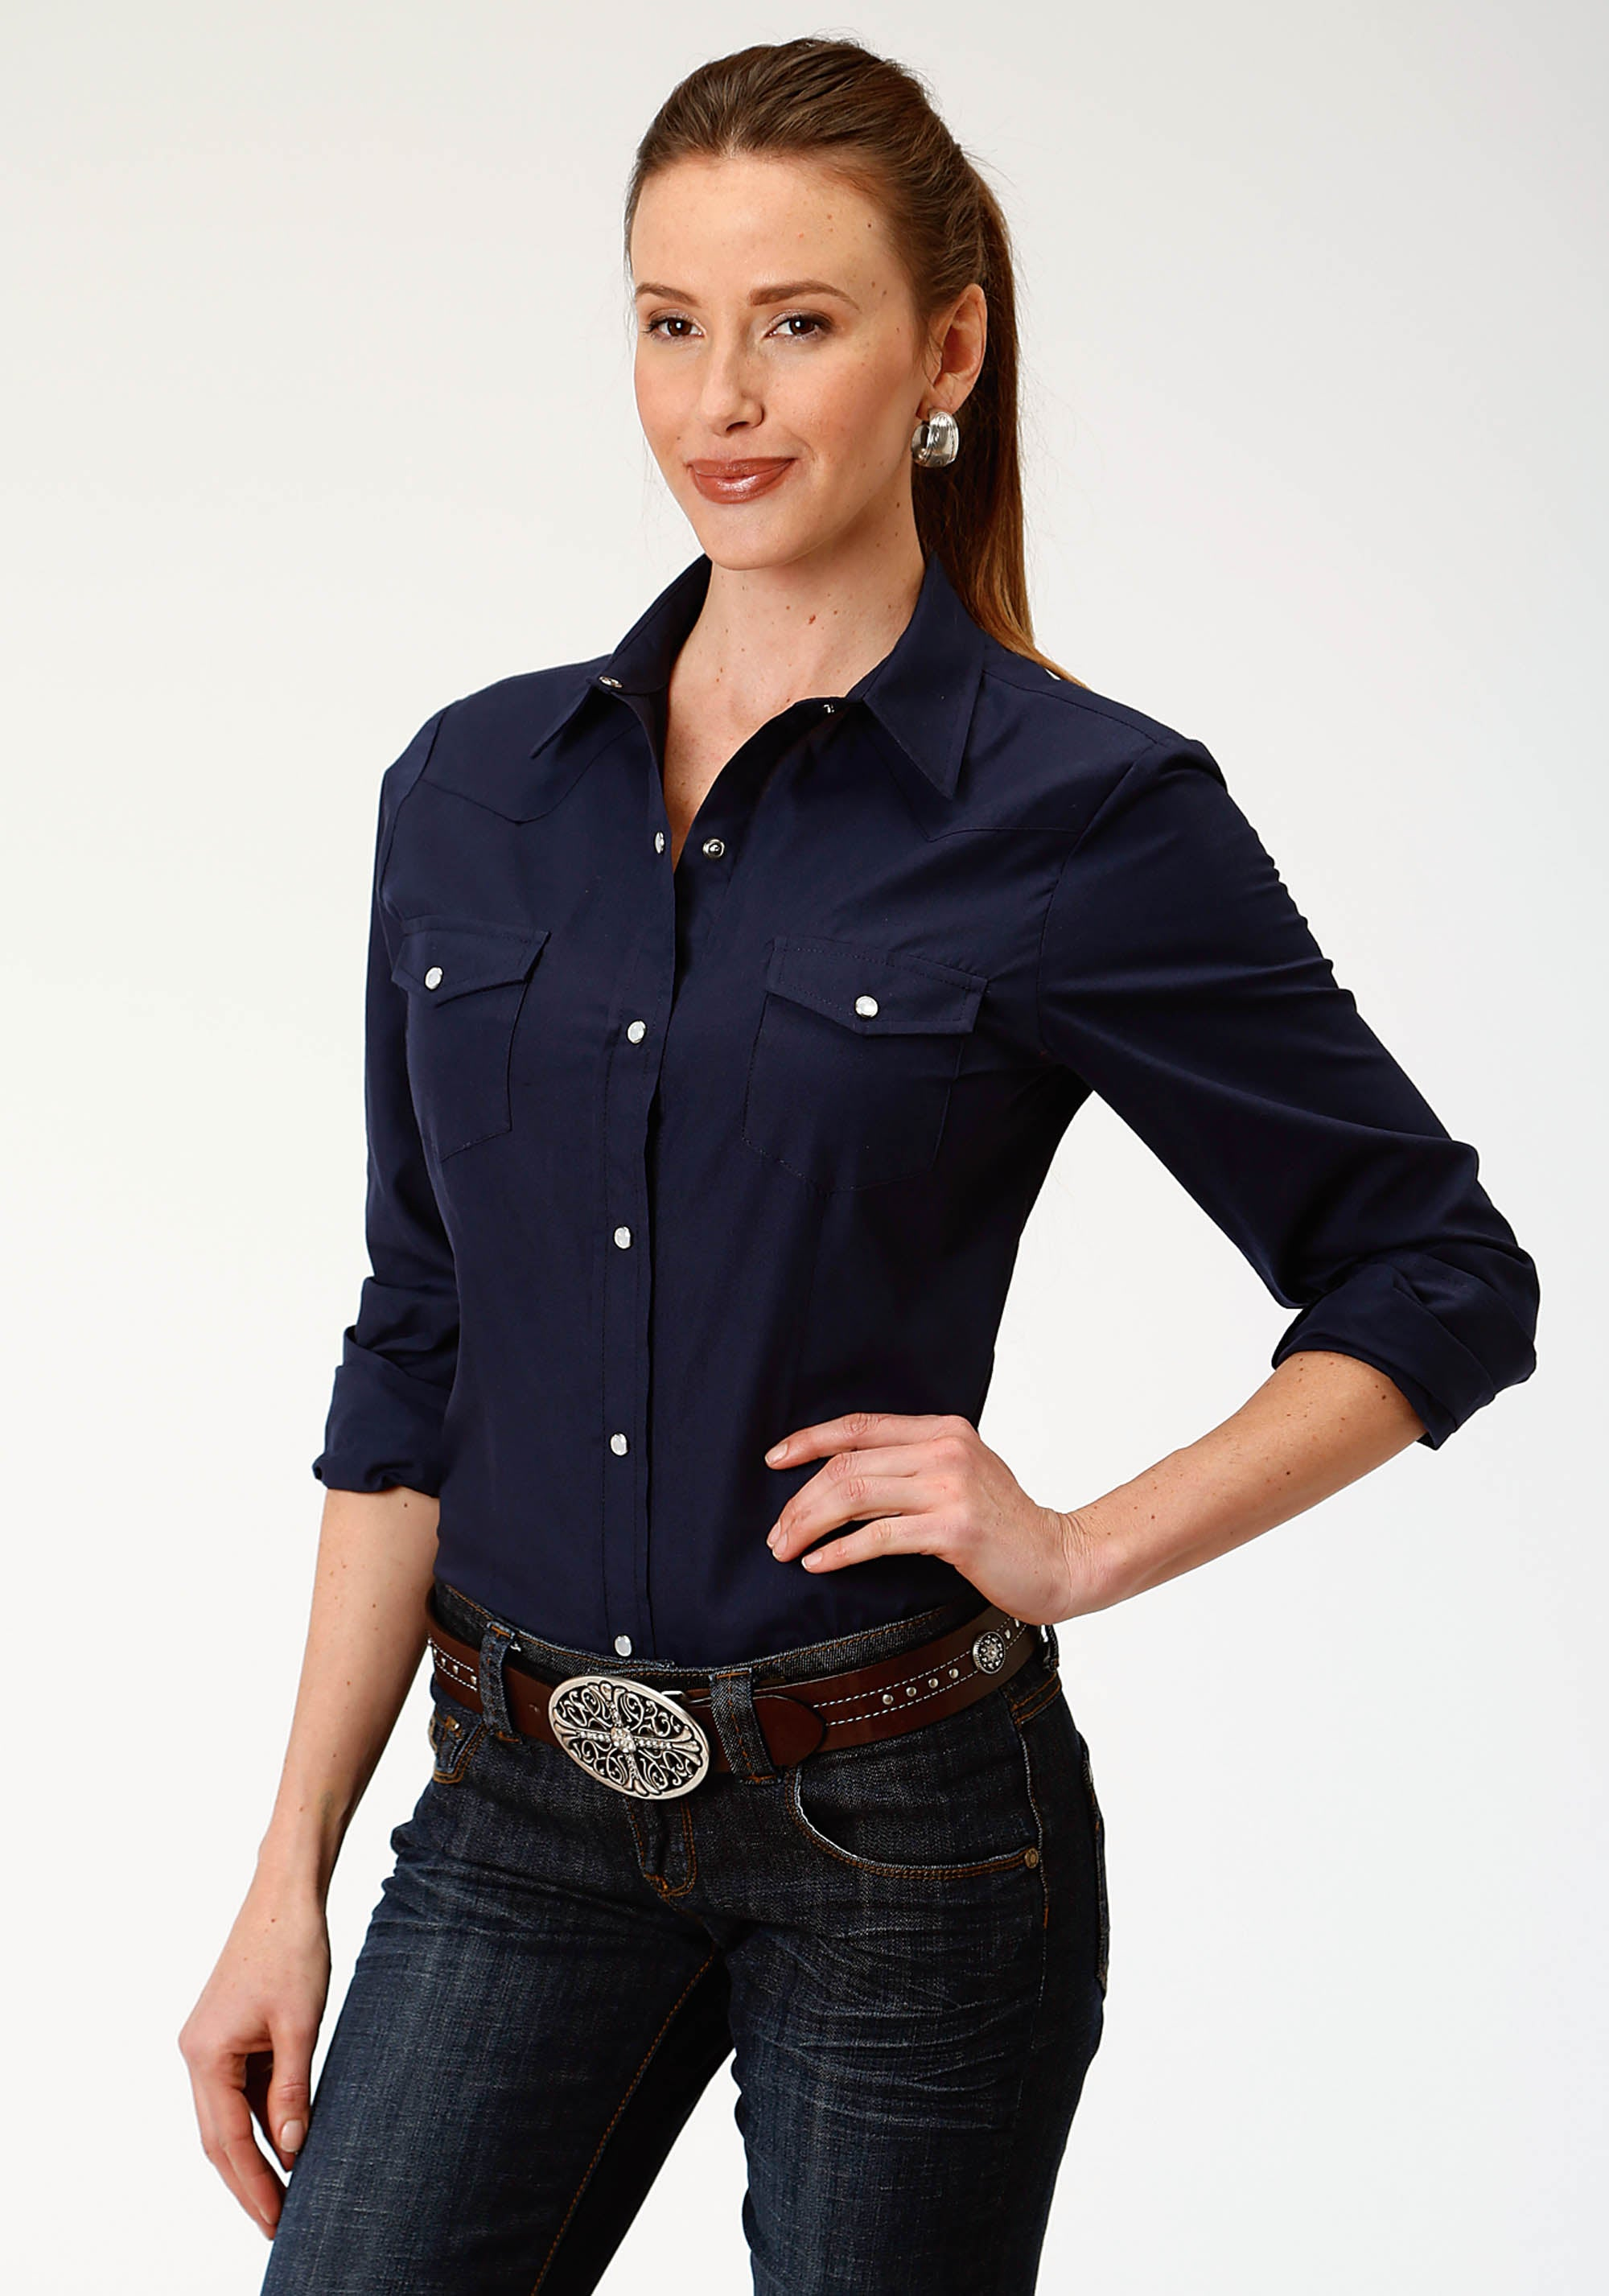 ROPER WOMENS BLUE 1148 SOLID BROADCLOTH - NAVY KARMAN CLASSICS- 55/45 SOLID LONG SLEEVE